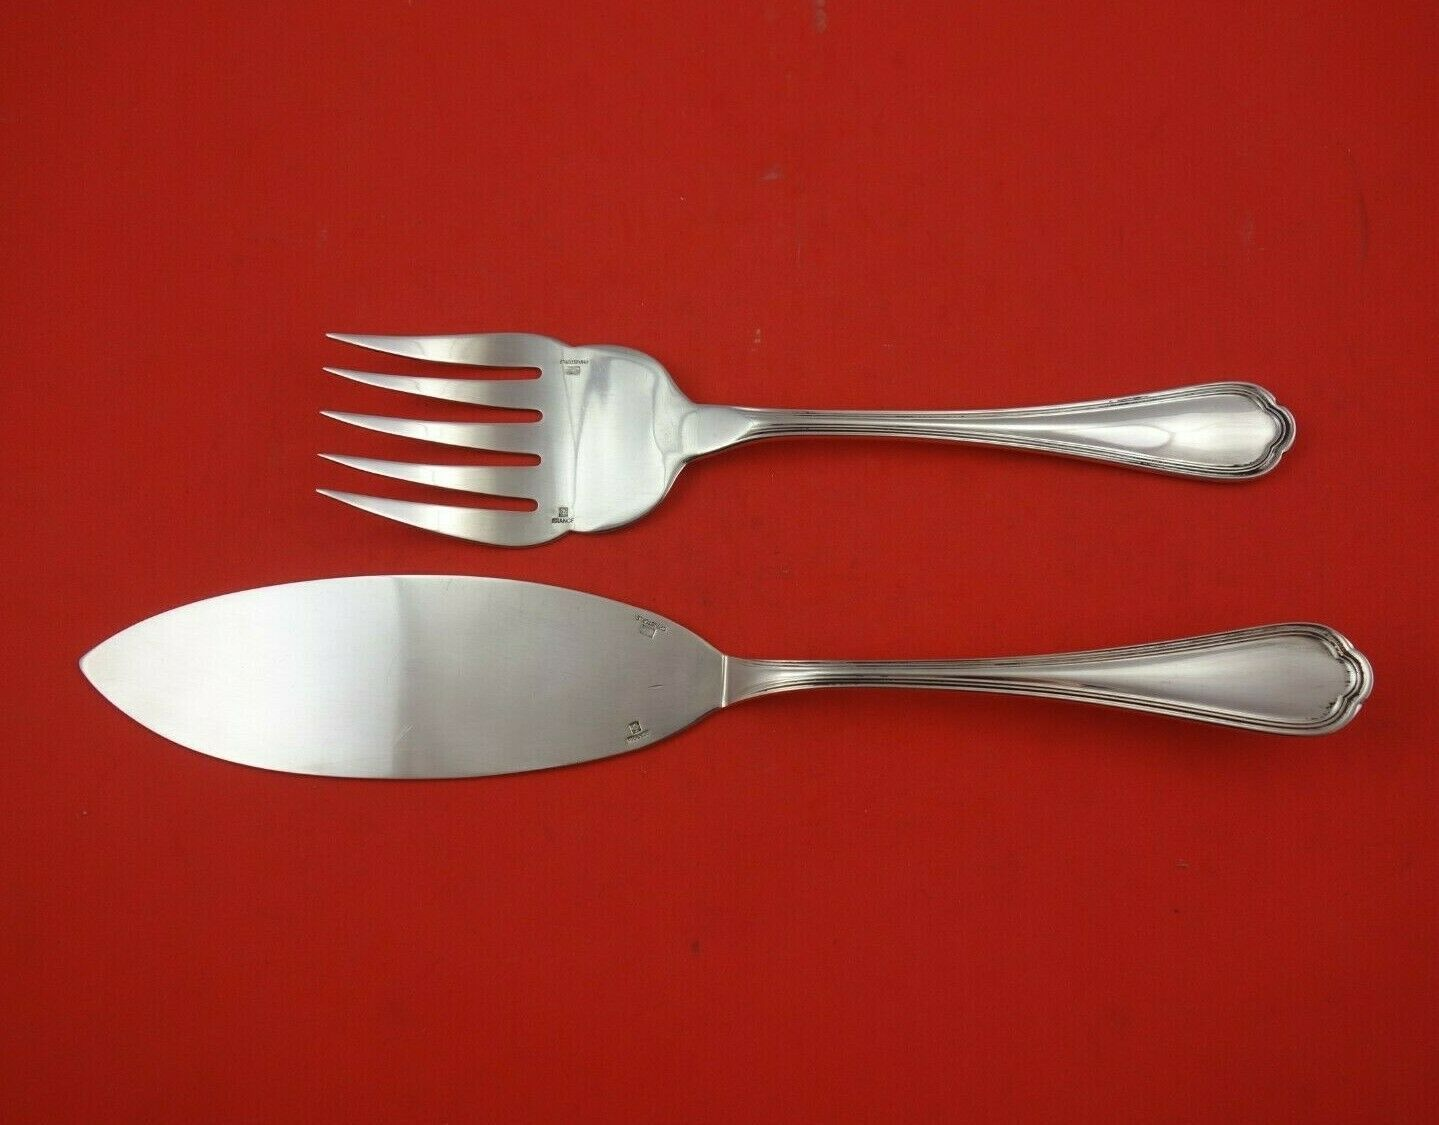 Primary image for Spatours by Christofle Silverplate Fish Serving Set 2-Piece Fork and Server